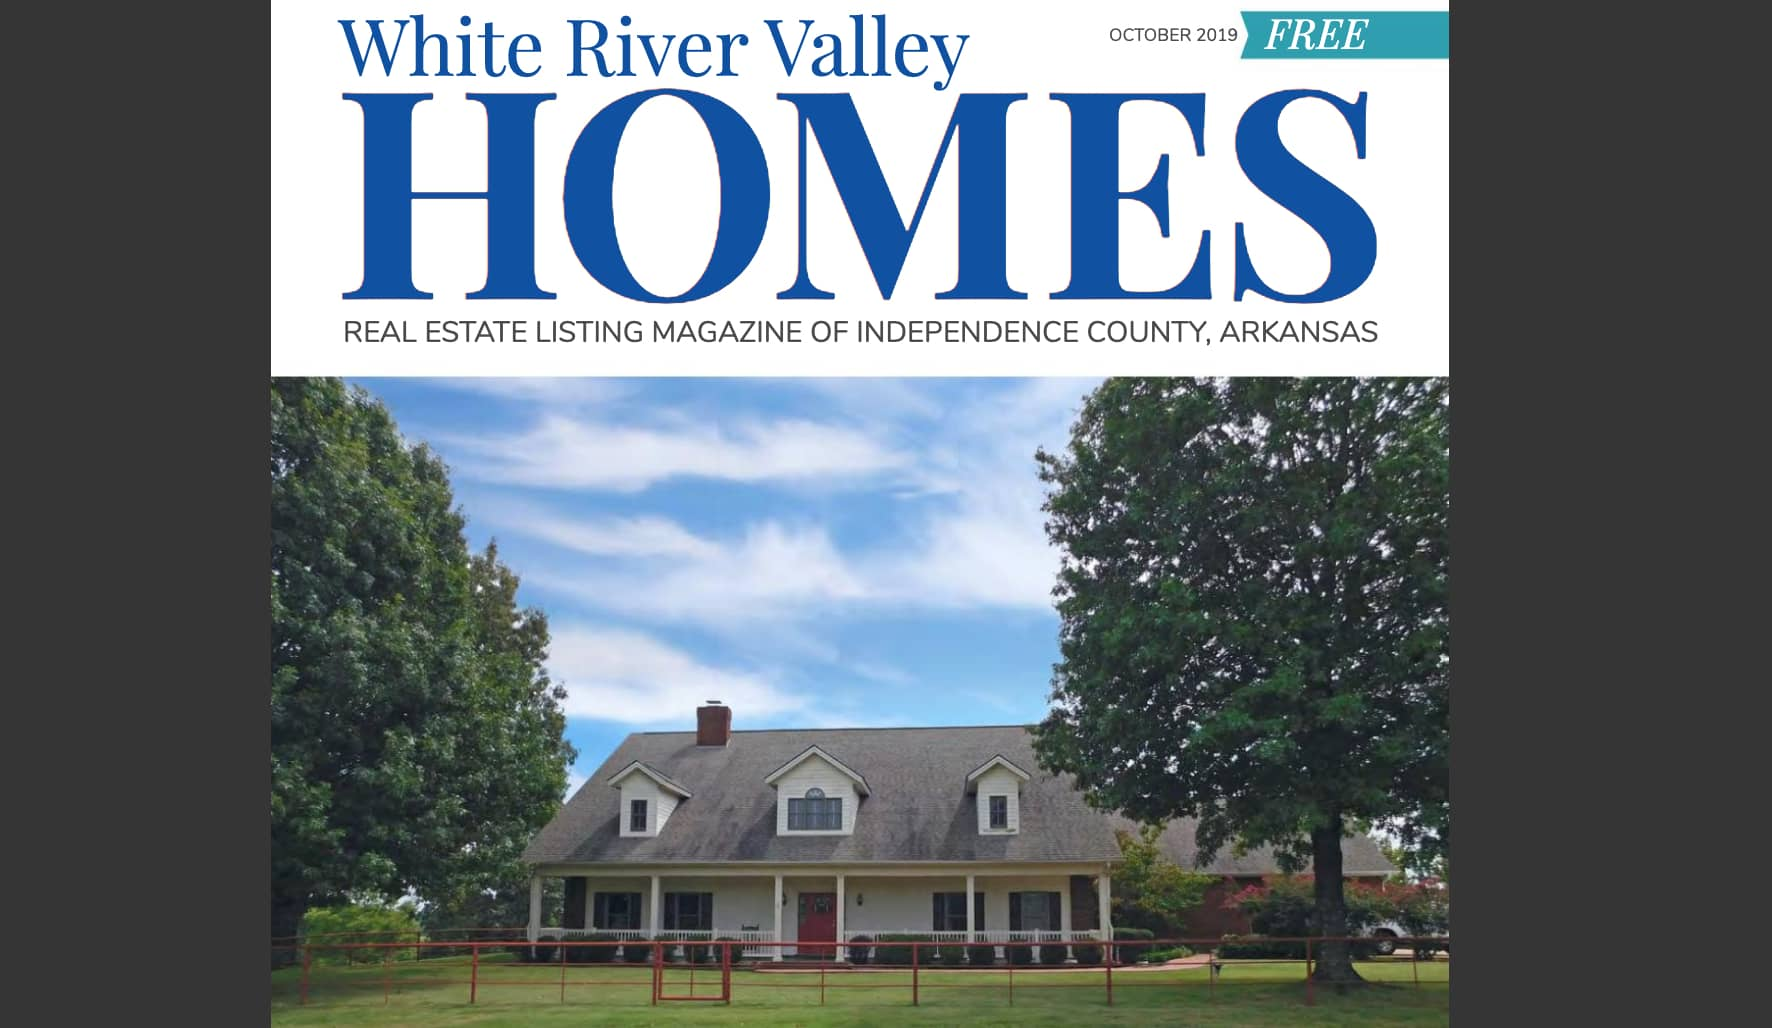 White River Valley Homes Oct 2019 Featured.jpg